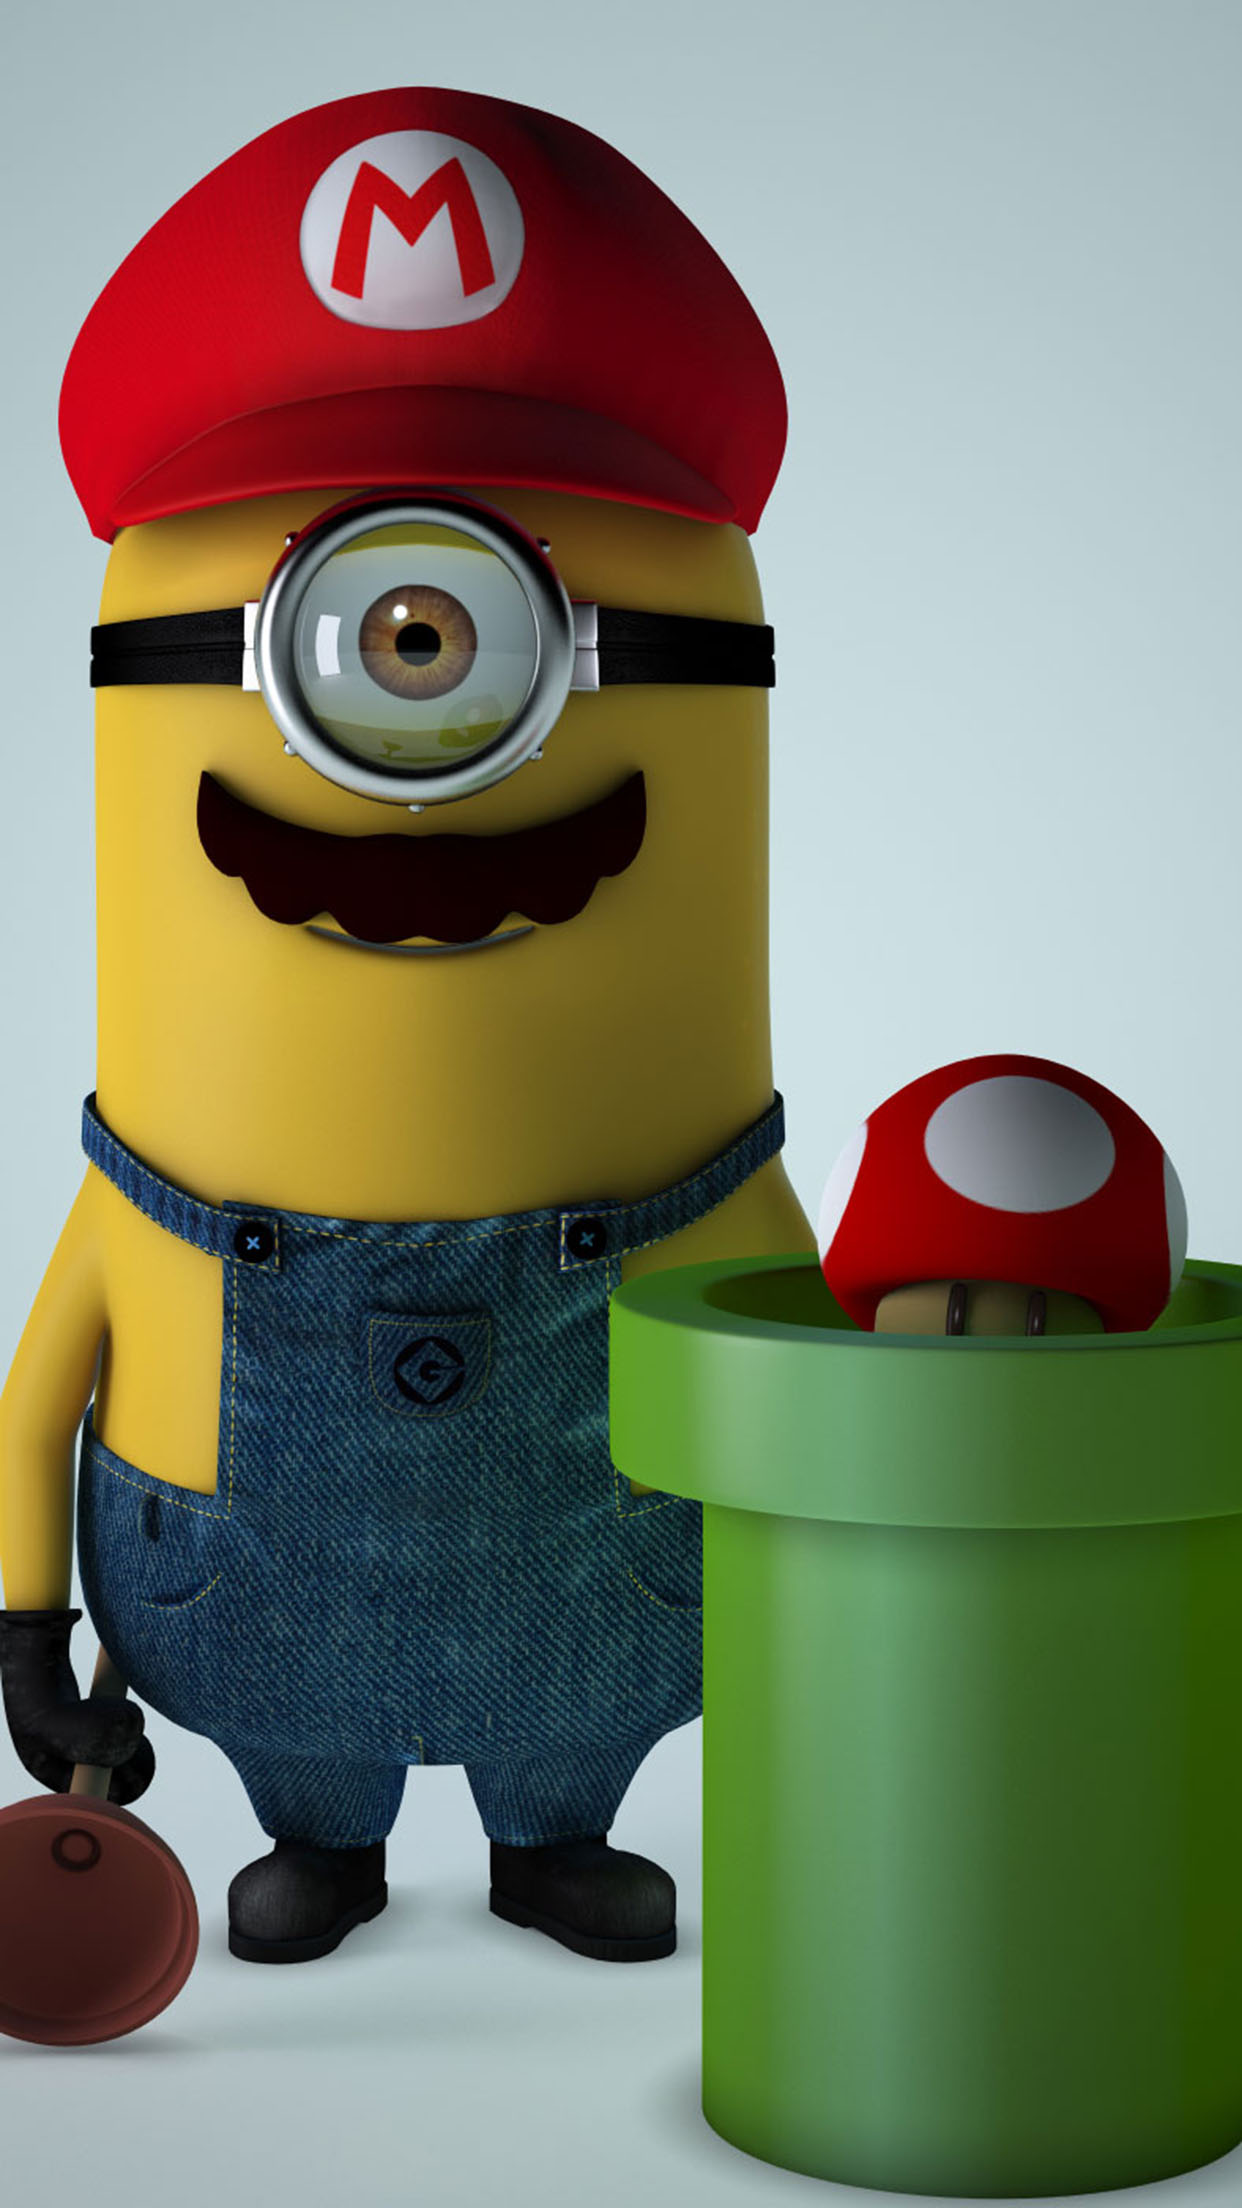 Despicable Me Mario 3Wallpapers iPhone Parallax Despicable Me art: Mario